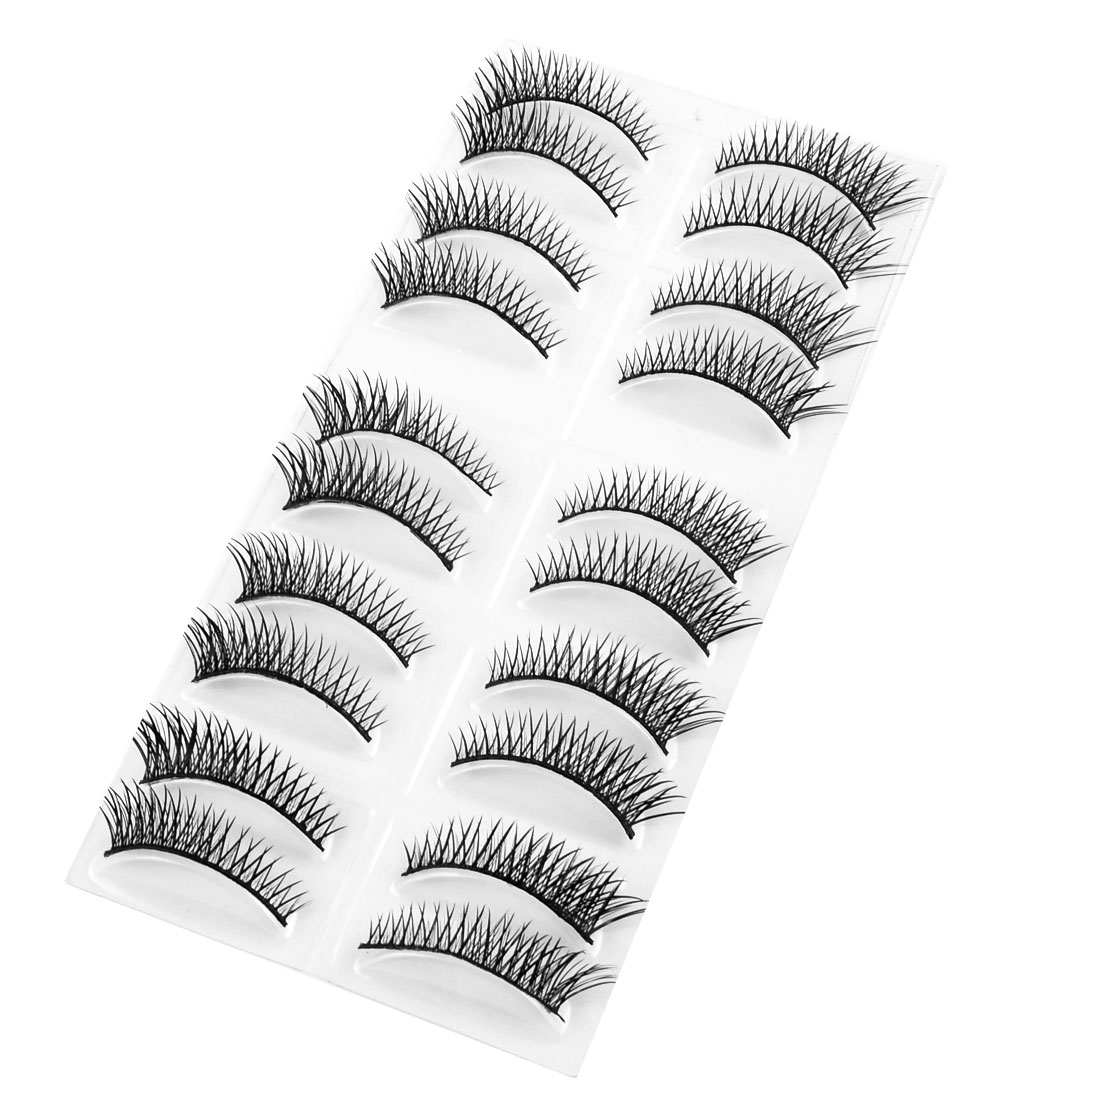 Eye Beauty Cosmetic Thick Long Curly Fake Eyelashes Black 10 Pairs